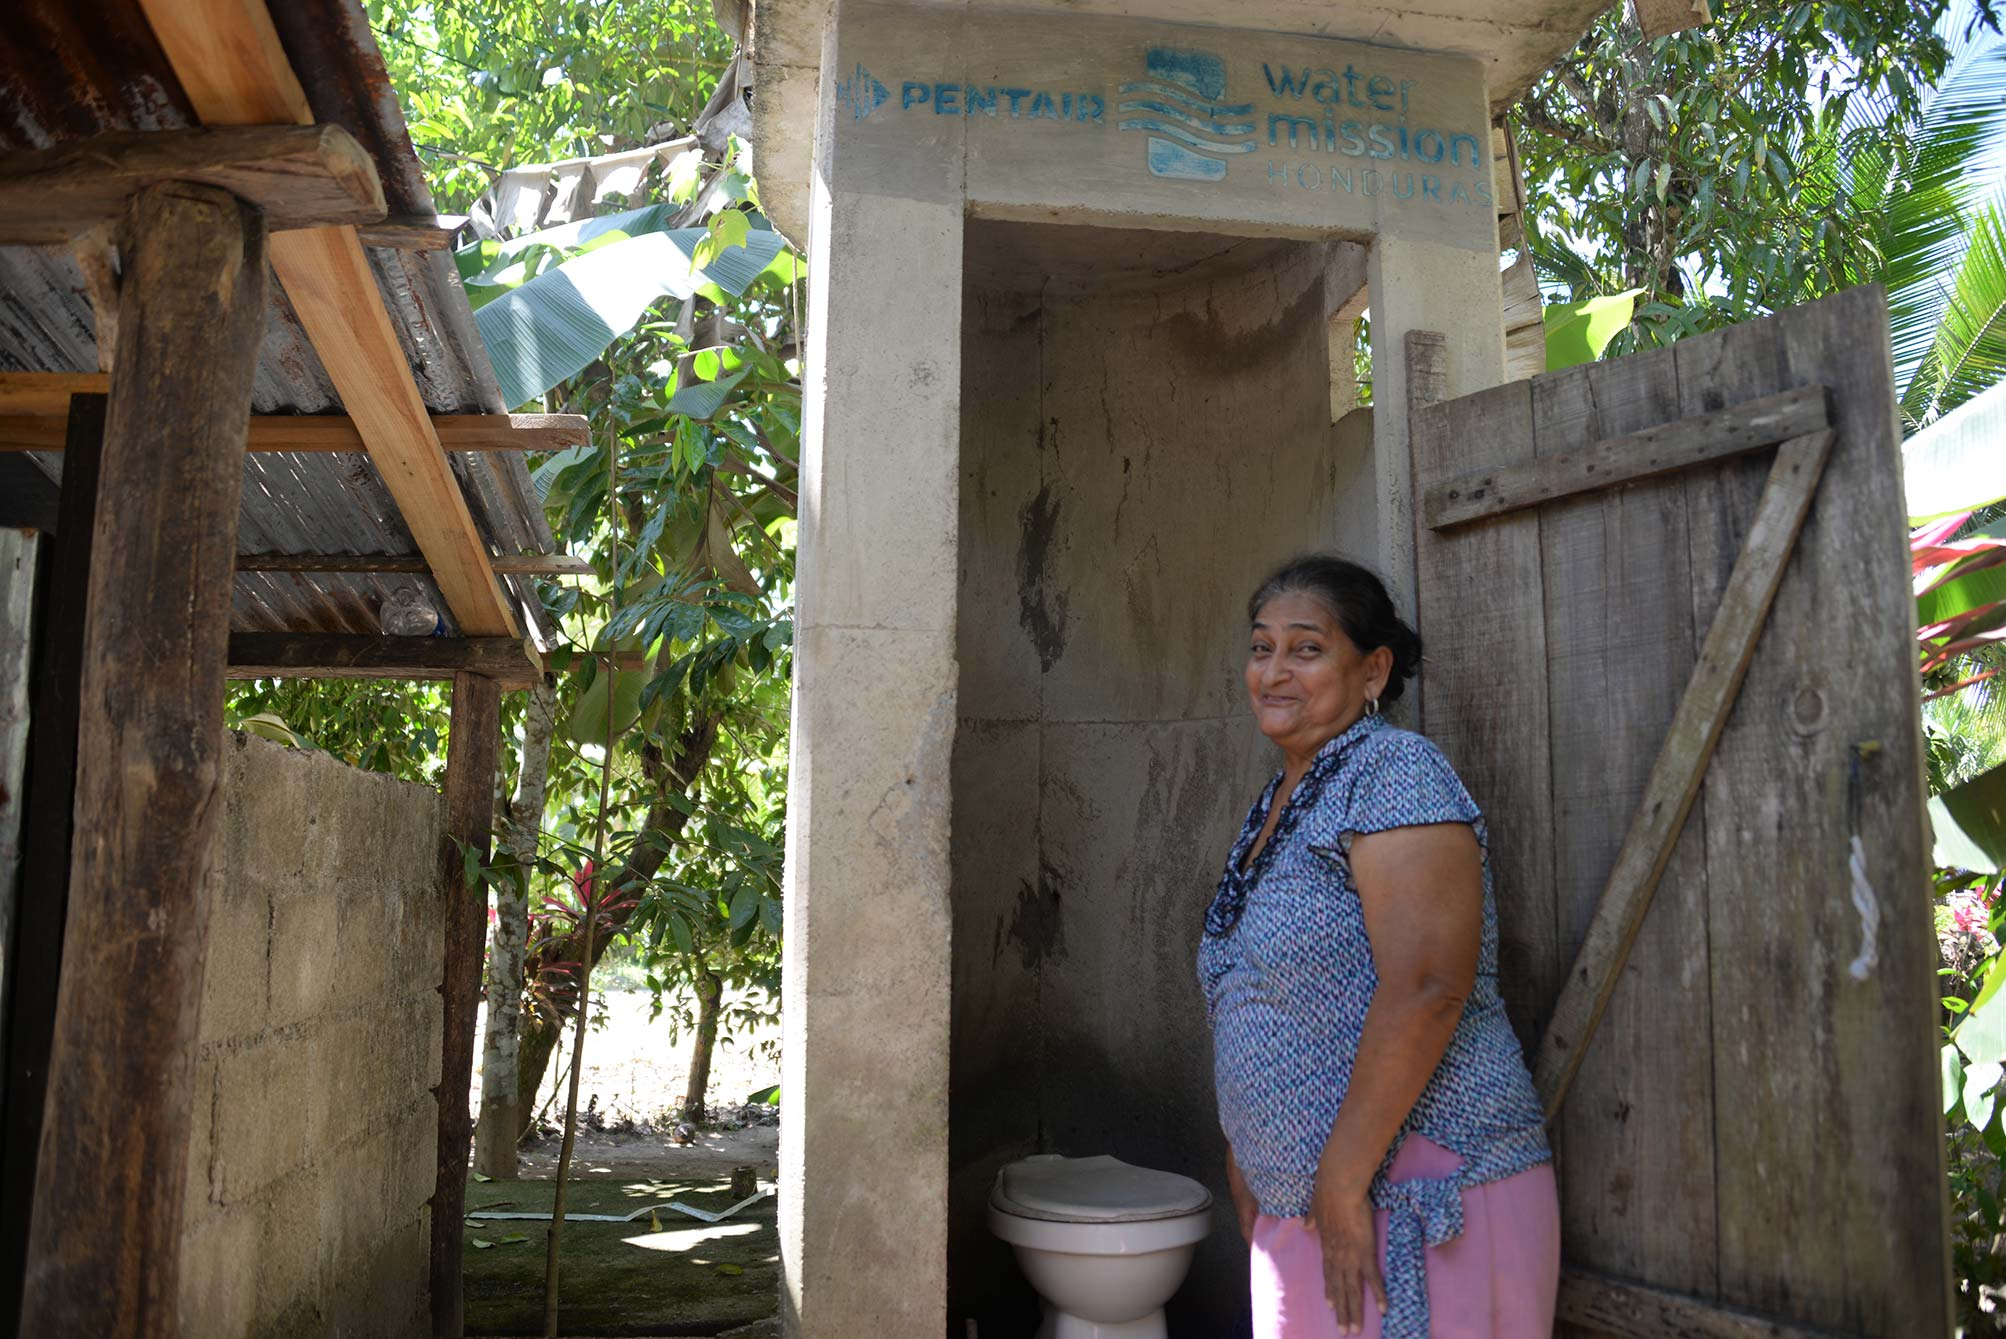 A woman in Honduras enjoys her latrine installed by Water Mission and Pentair.